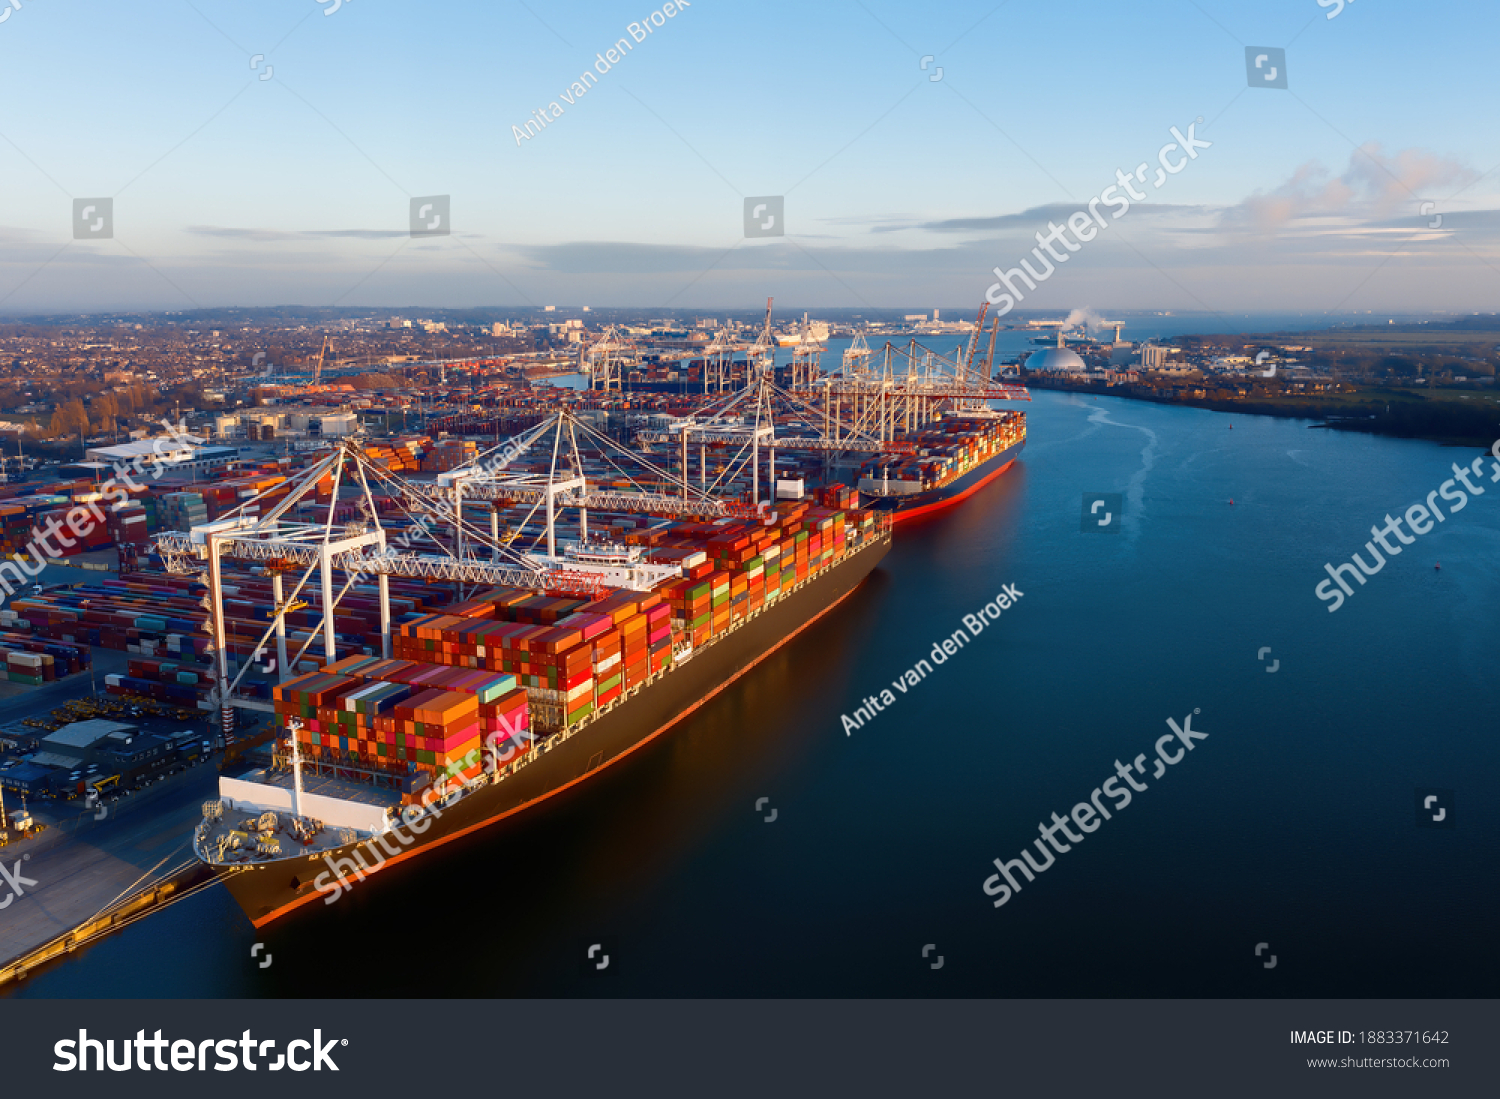 Aerial view of colorful containers on cargo ships at the port of Southampton, which is one of the Leading Port Terminal Operators in the UK. Containers on the dock too. Space for text. #1883371642